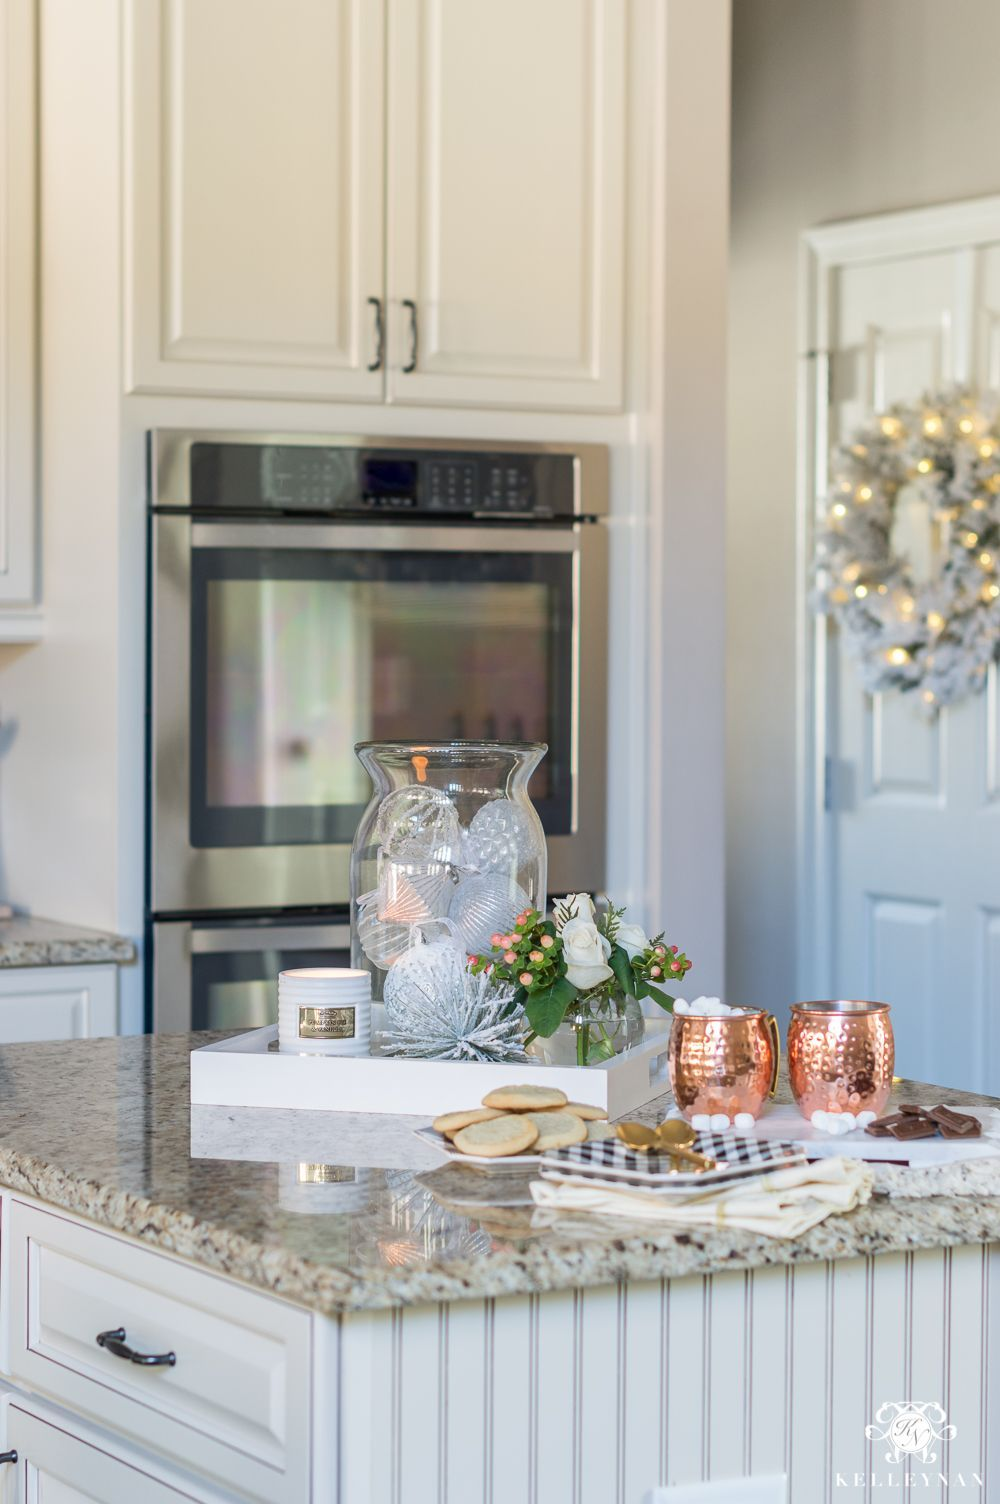 Room and kitchen design christmas kitchen design pinterest